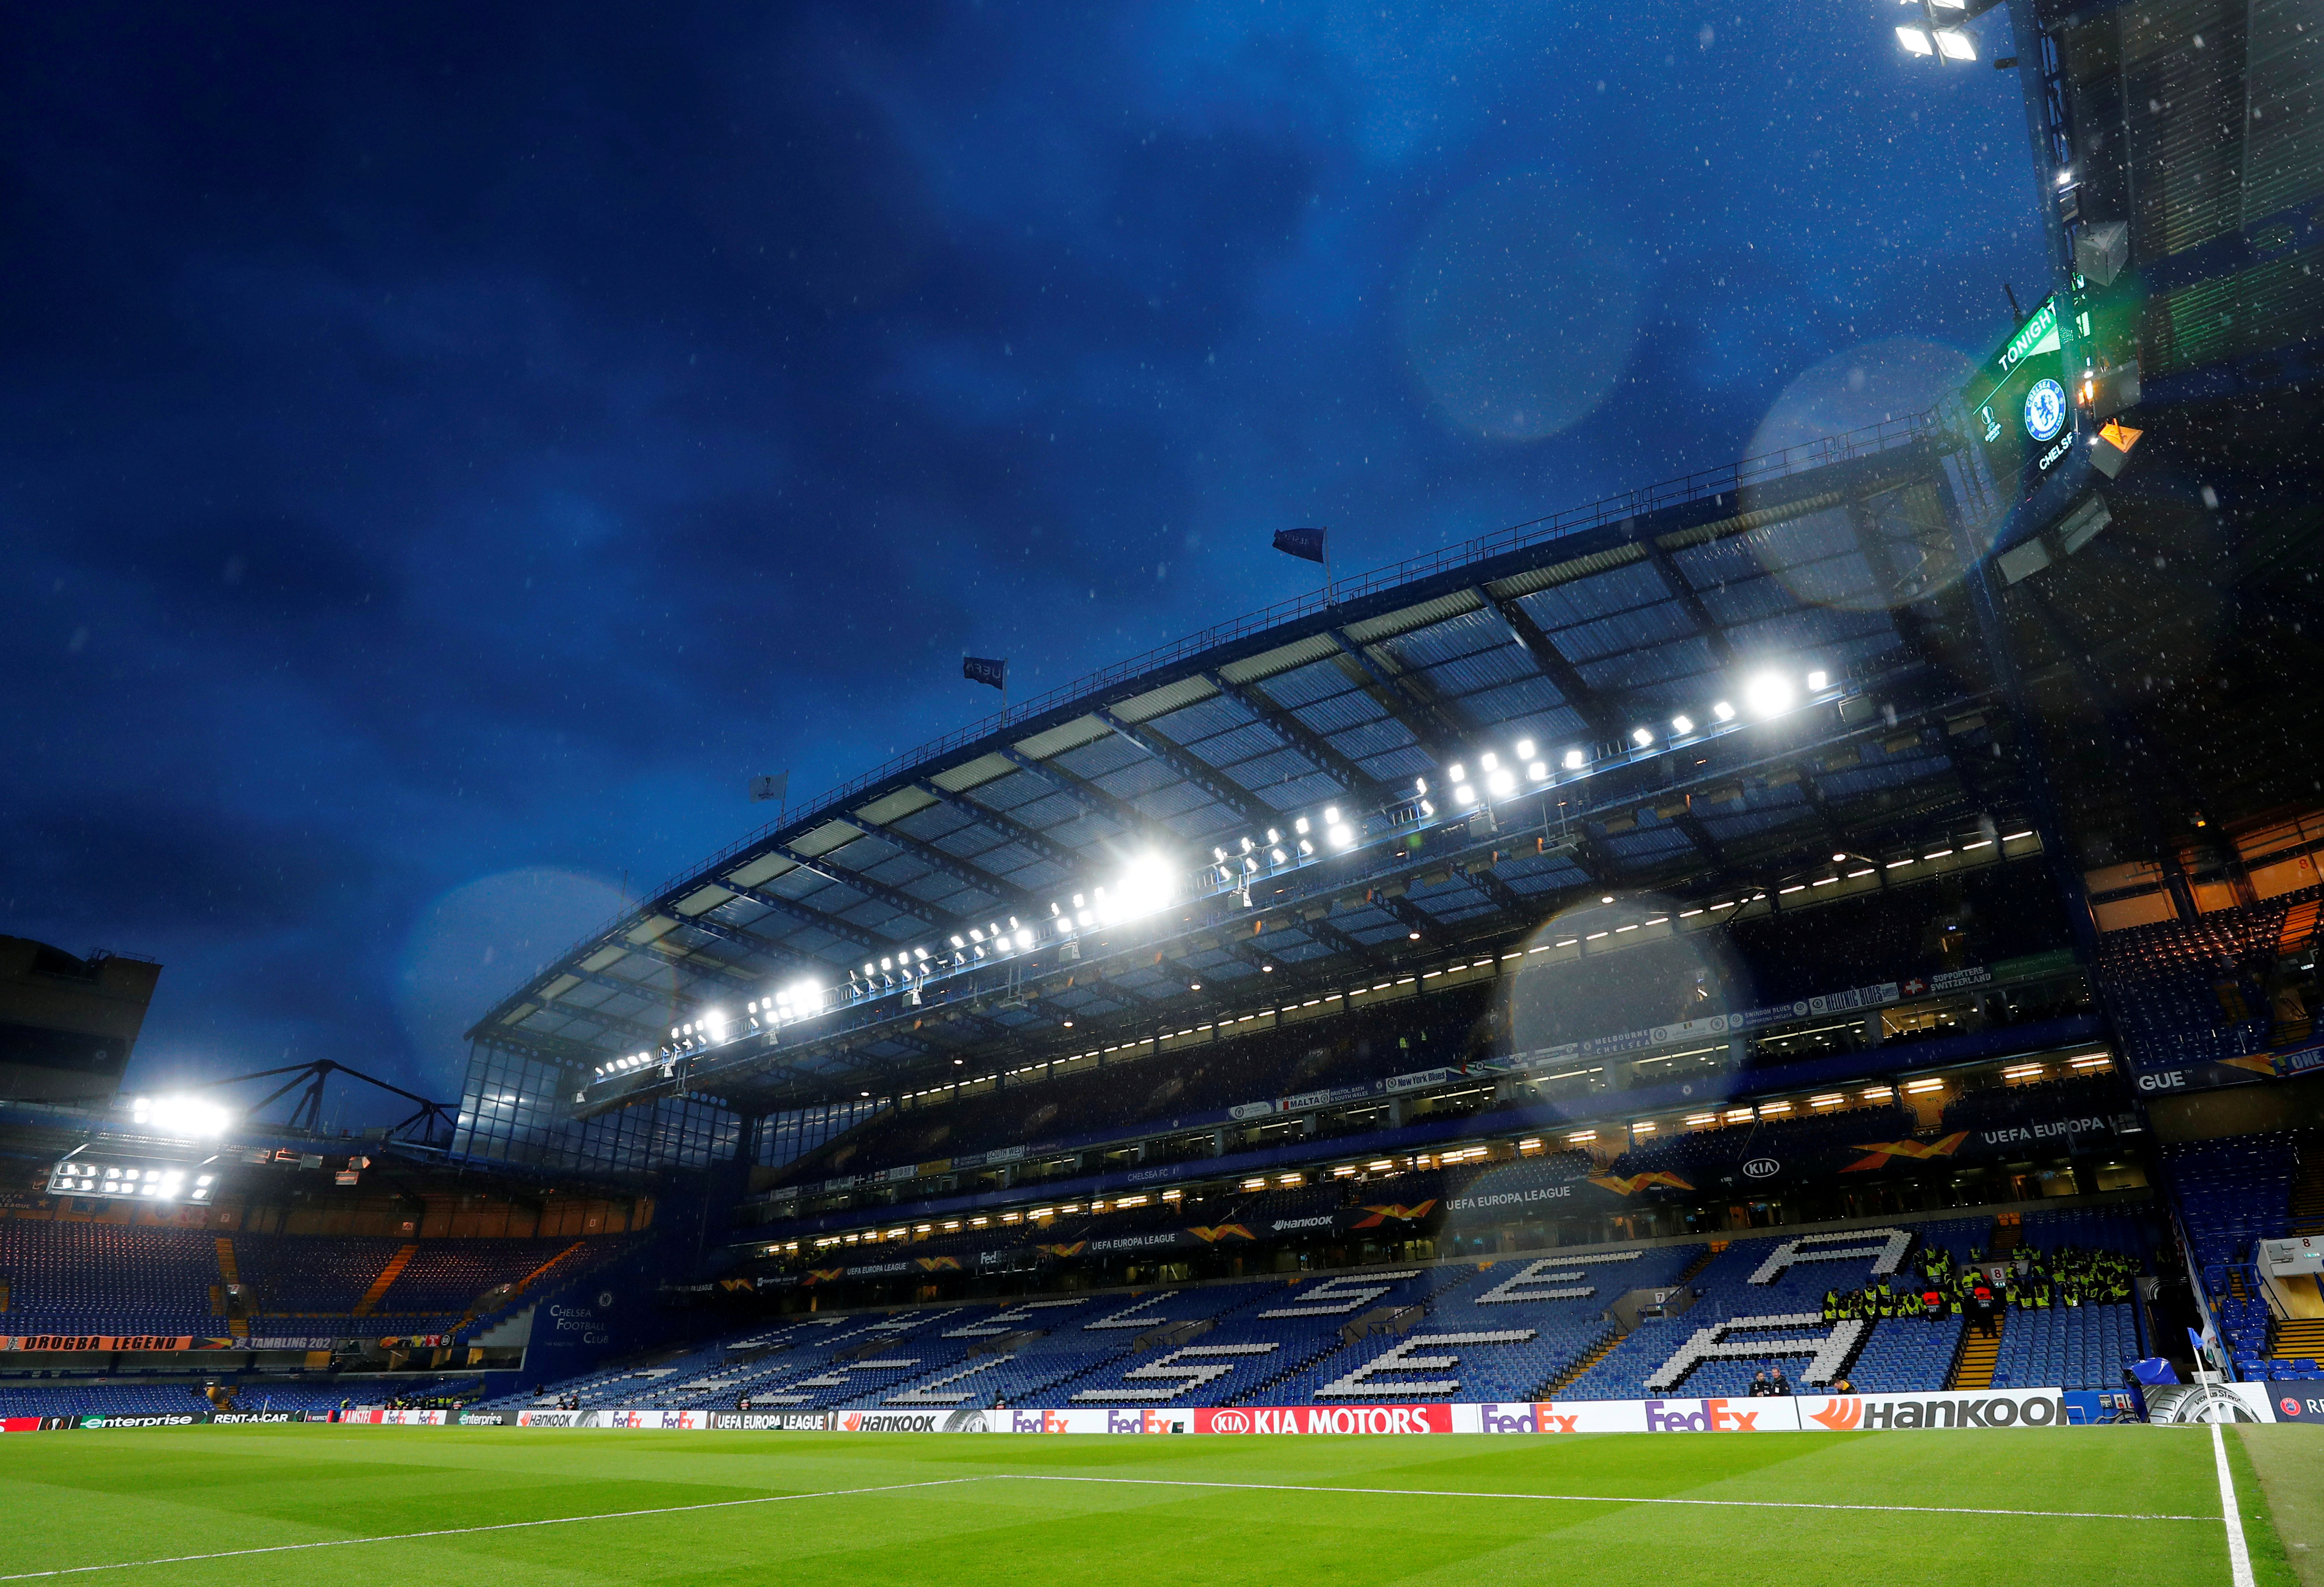 Chelsea lose transfer ban appeal but can register minor